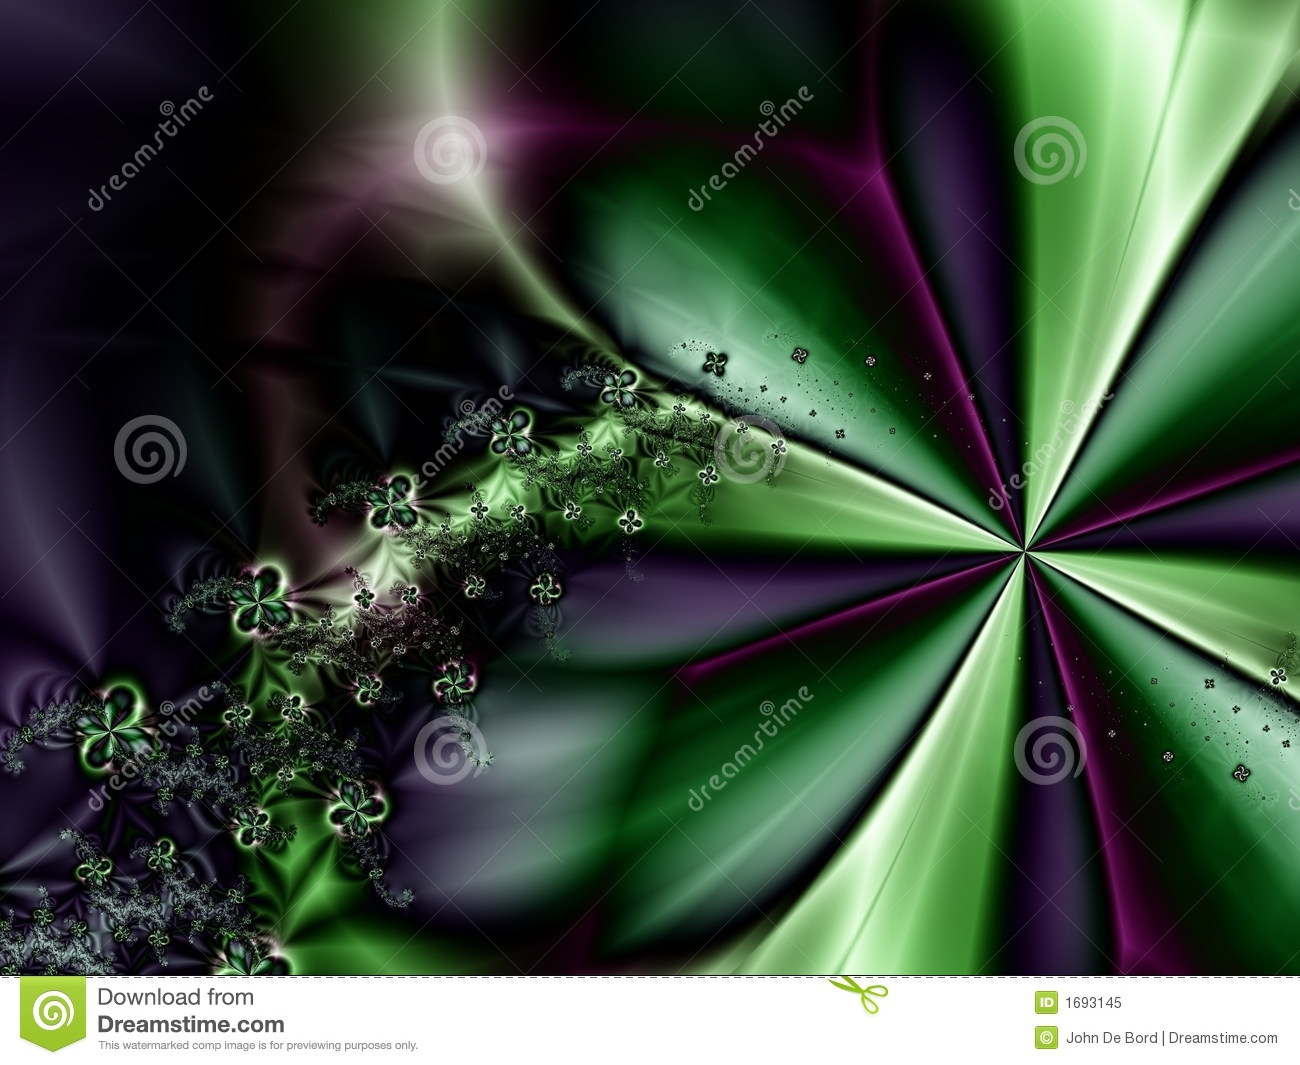 green and purple abstract pattern stock illustration illustration of colorful relaxing 1693145. Black Bedroom Furniture Sets. Home Design Ideas